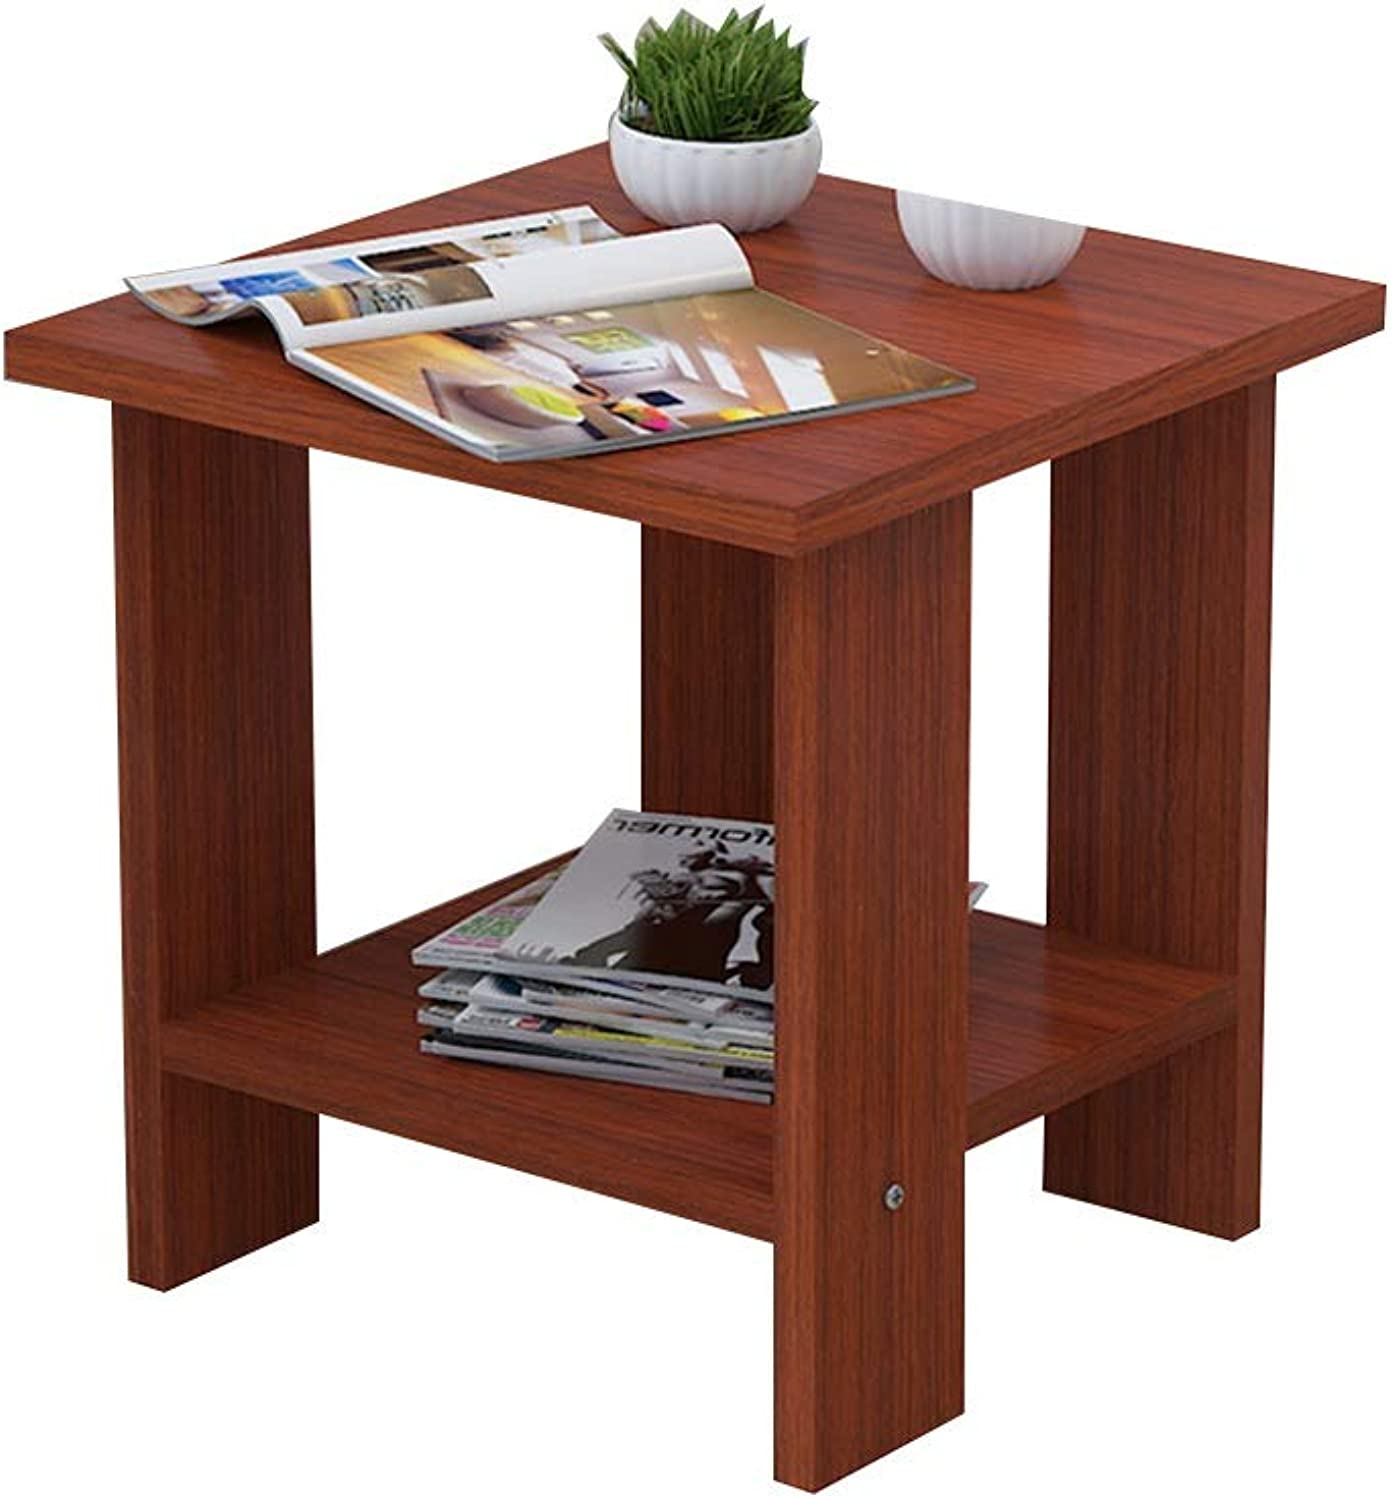 Coffee Table Side Table, Small Apartment Mini Double Layer Storage Solid Wood Telephone Table for Living Room Bedroom (Size   12  12  12.8 in)